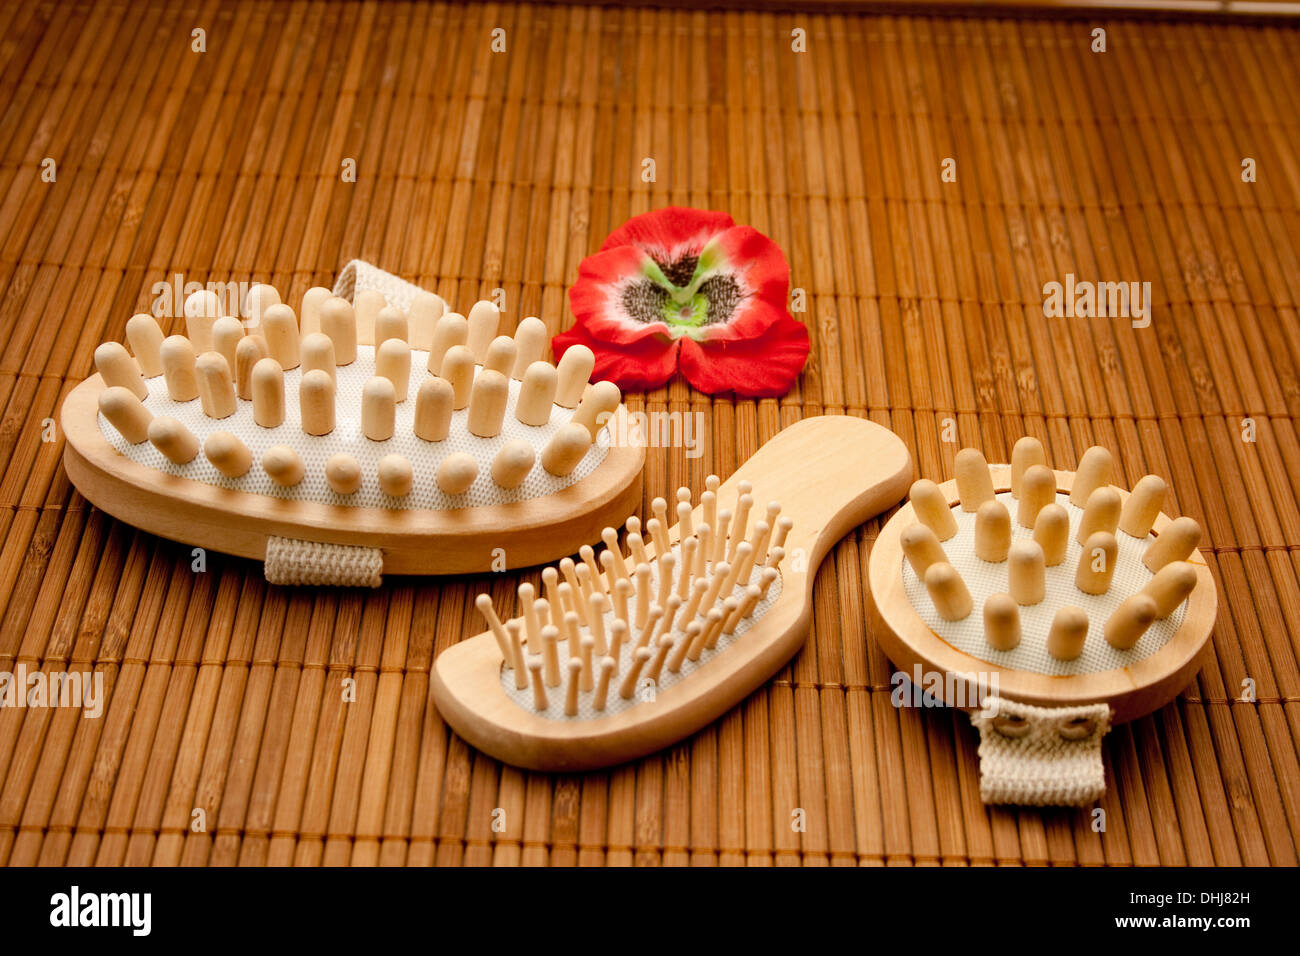 Hairbrush with massage brush on brown wooden base - Stock Image